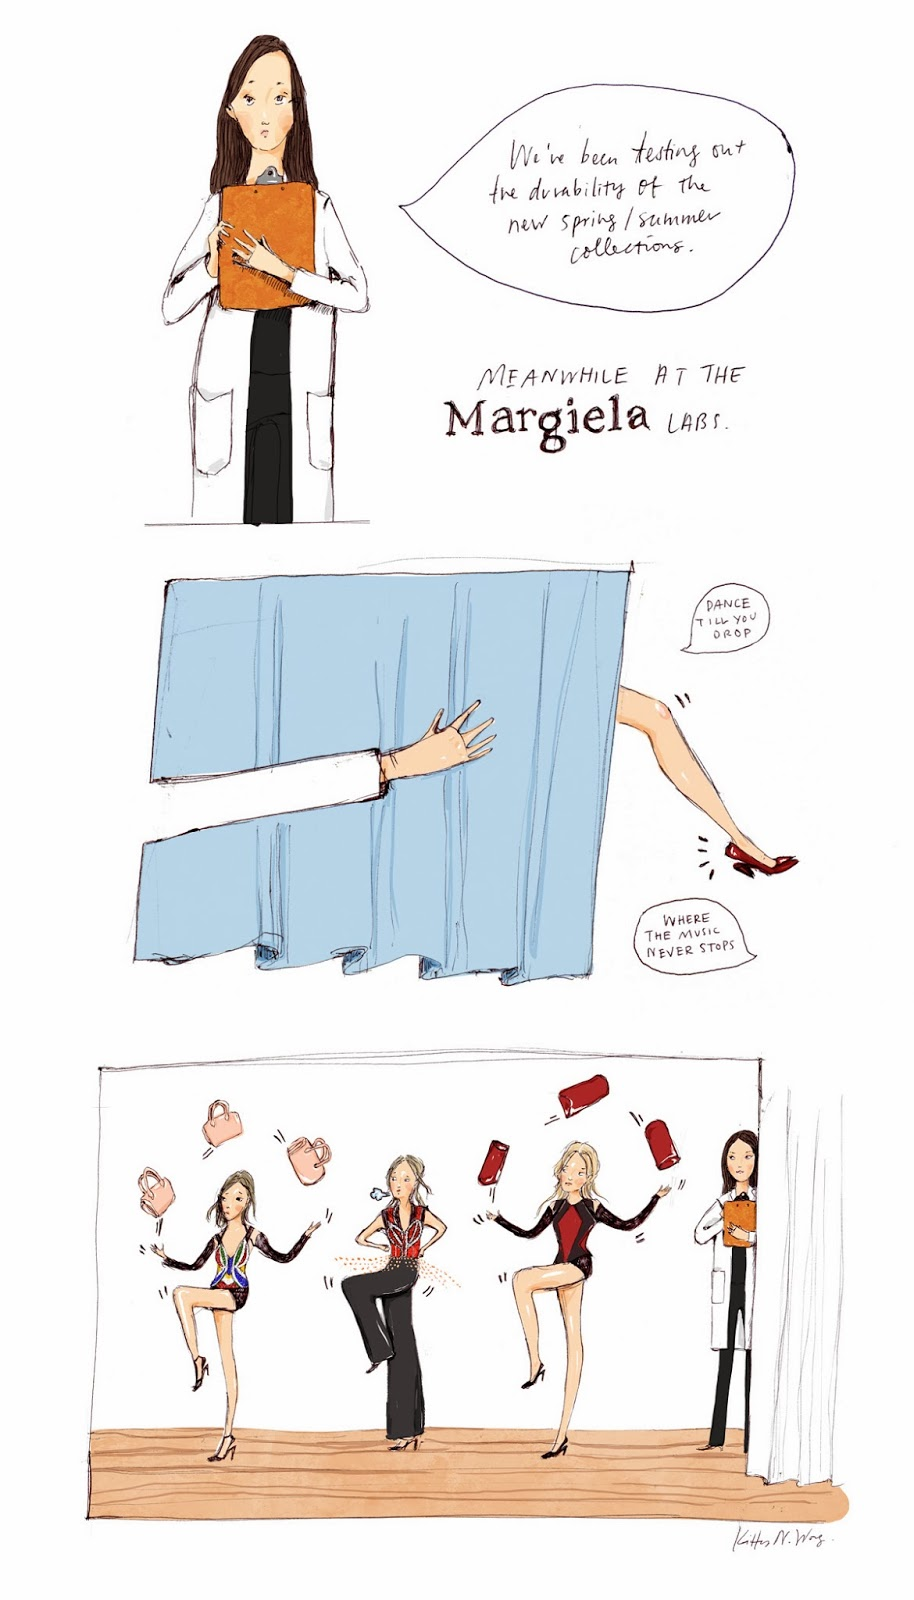 Kitty N. Wong / Martin Margiela fashion laboratory comic